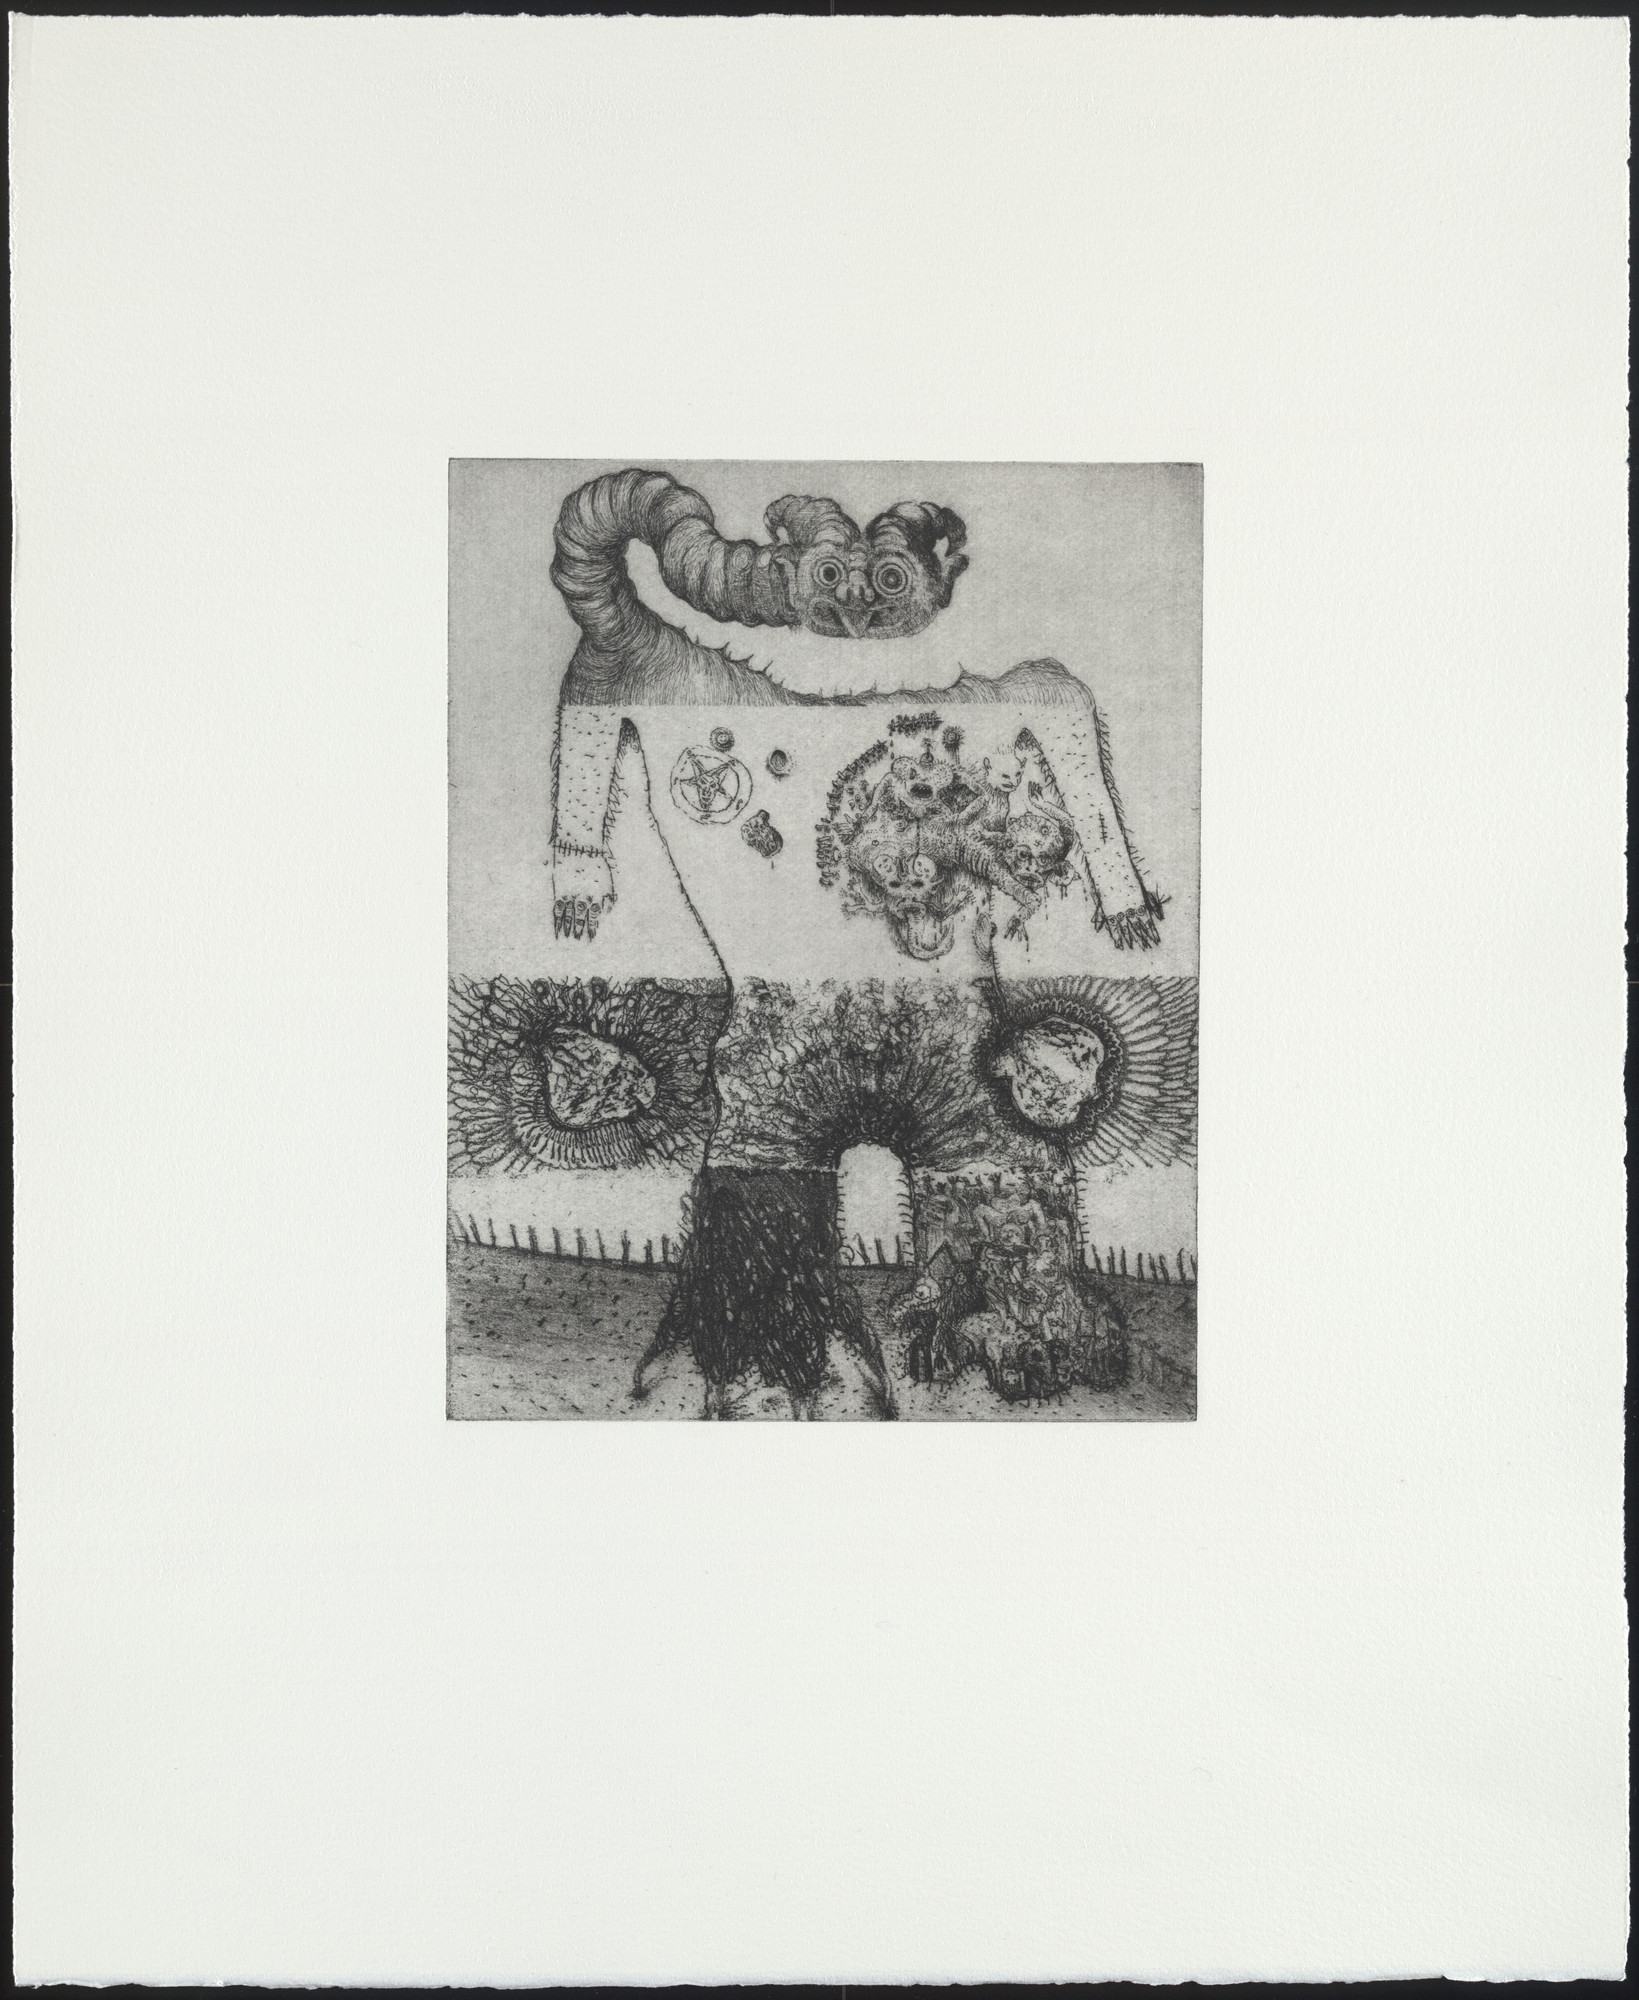 Dinos and Jake Chapman. Untitled, from the portfolio Exquisite Corpse. 2000. Etching. Plate: 9 1⁄16 × 7 1/16″ (23 × 18 cm). Publisher: The Paragon Press, London. Printer: Hope (Sufferance) Press, London. Edition: 30. The Museum of Modern Art. Roxanne H. Frank Fund